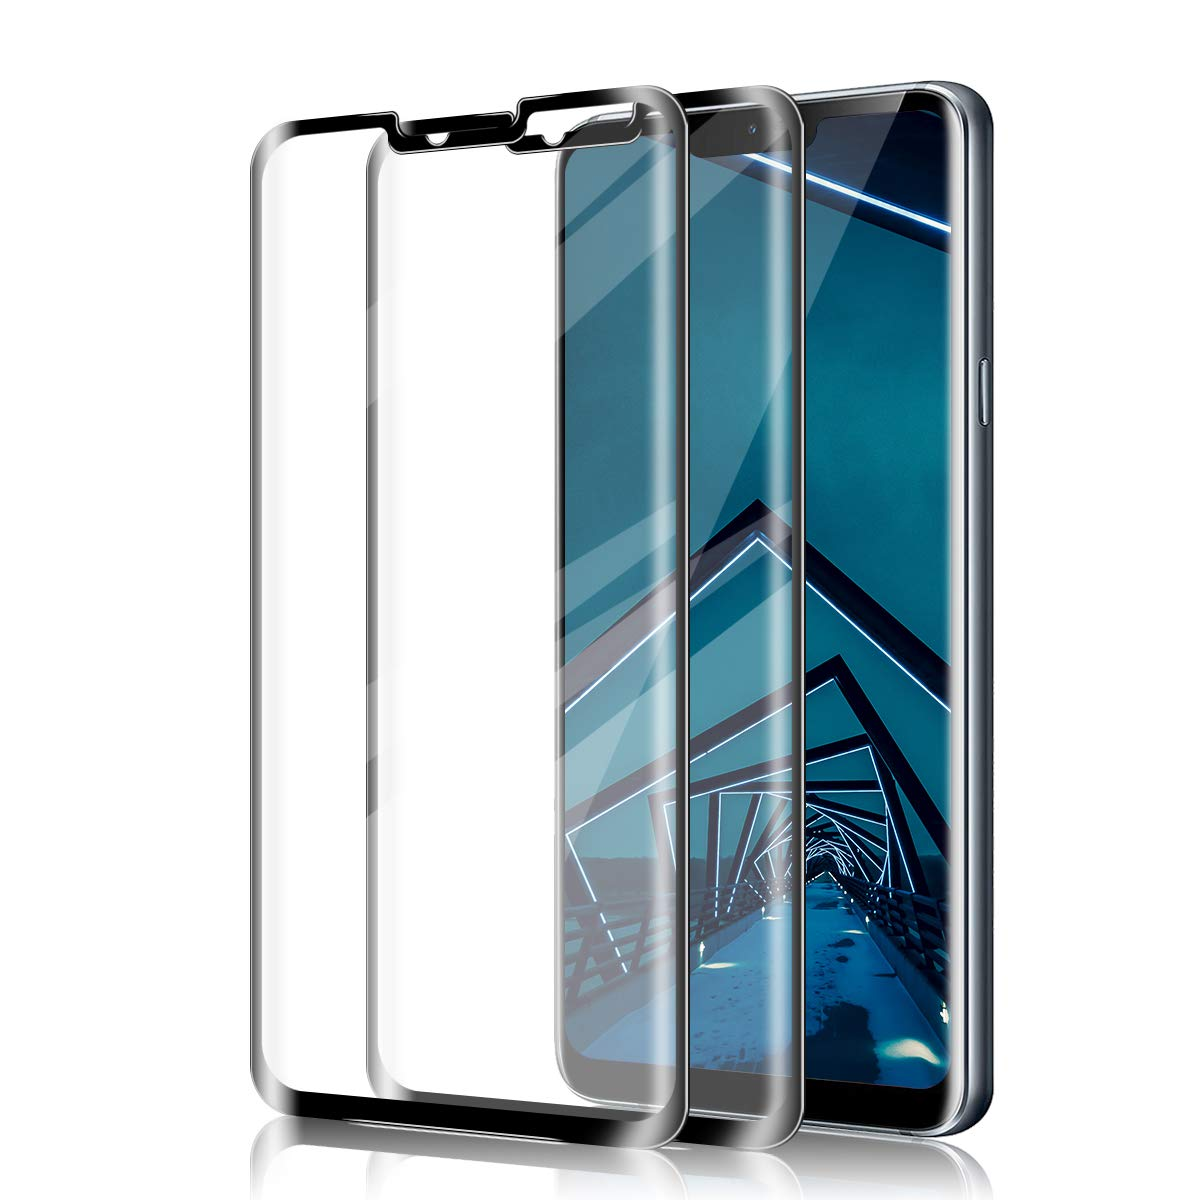 LG V40/V50 ThinQ Screen Protector by BIGFACE, [2 Pack] Full Coverage Premium Tempered Glass, HD Clarity, Case Friendly, Anti - Scratch, 3D Touch Accuracy Anti Bubble Film for LG V40/V50 ThinQ